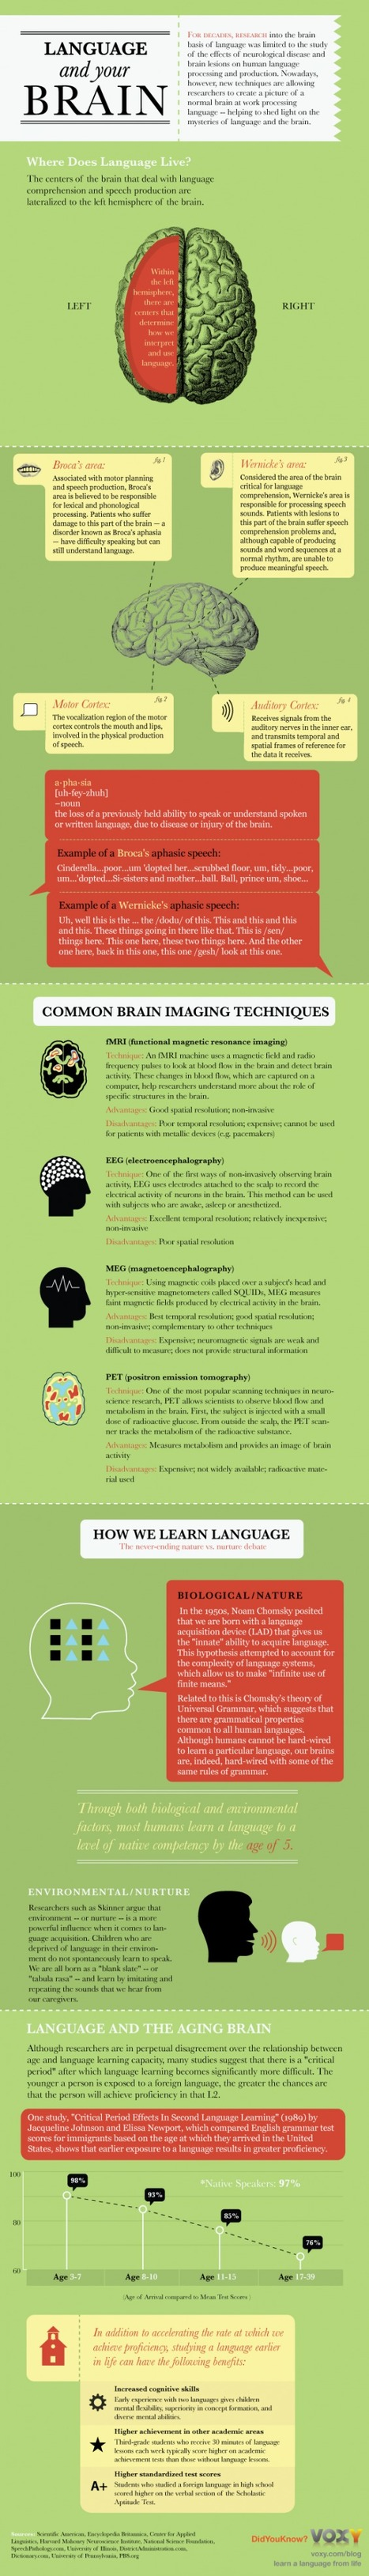 Language and Your Brain - INFOGRAPHIC | eLearning News | Scoop.it